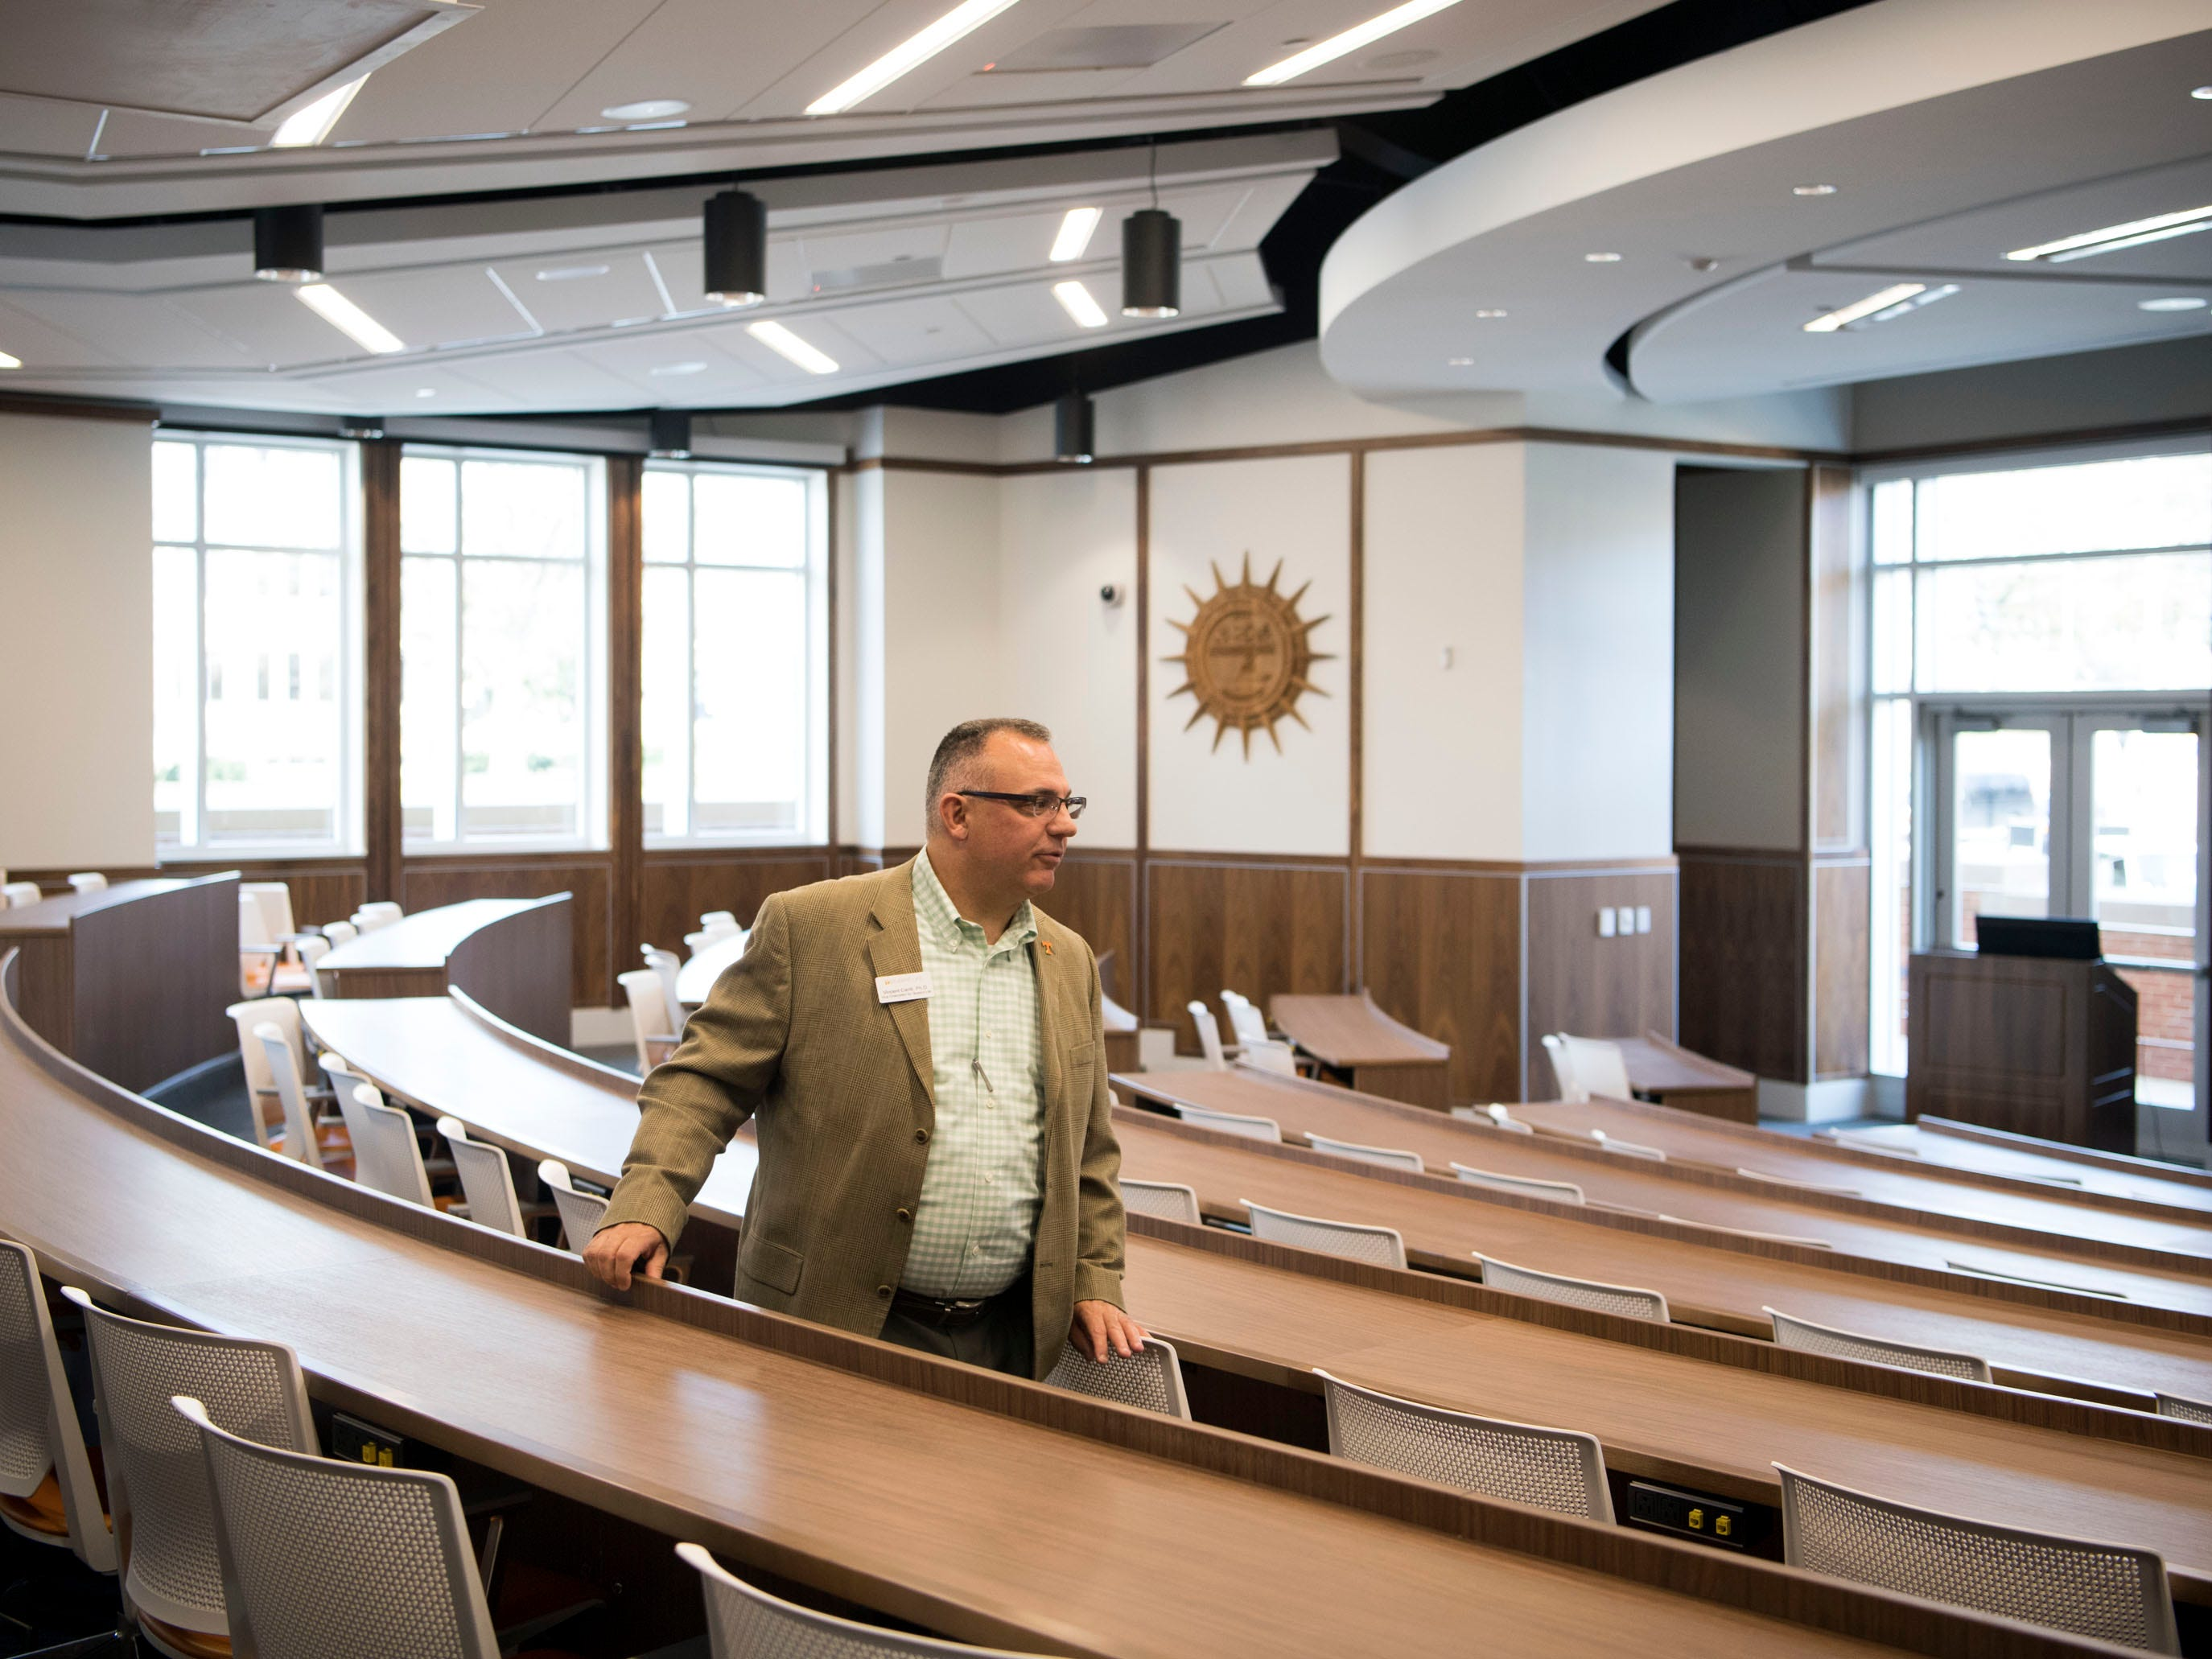 Vincent Carilli, PhD, University of Tennessee's Vice Chancellor for Student Life gives a tour of the tiered meeting room at the recently opened second phase of the Student Union on Monday, January 7, 2019.